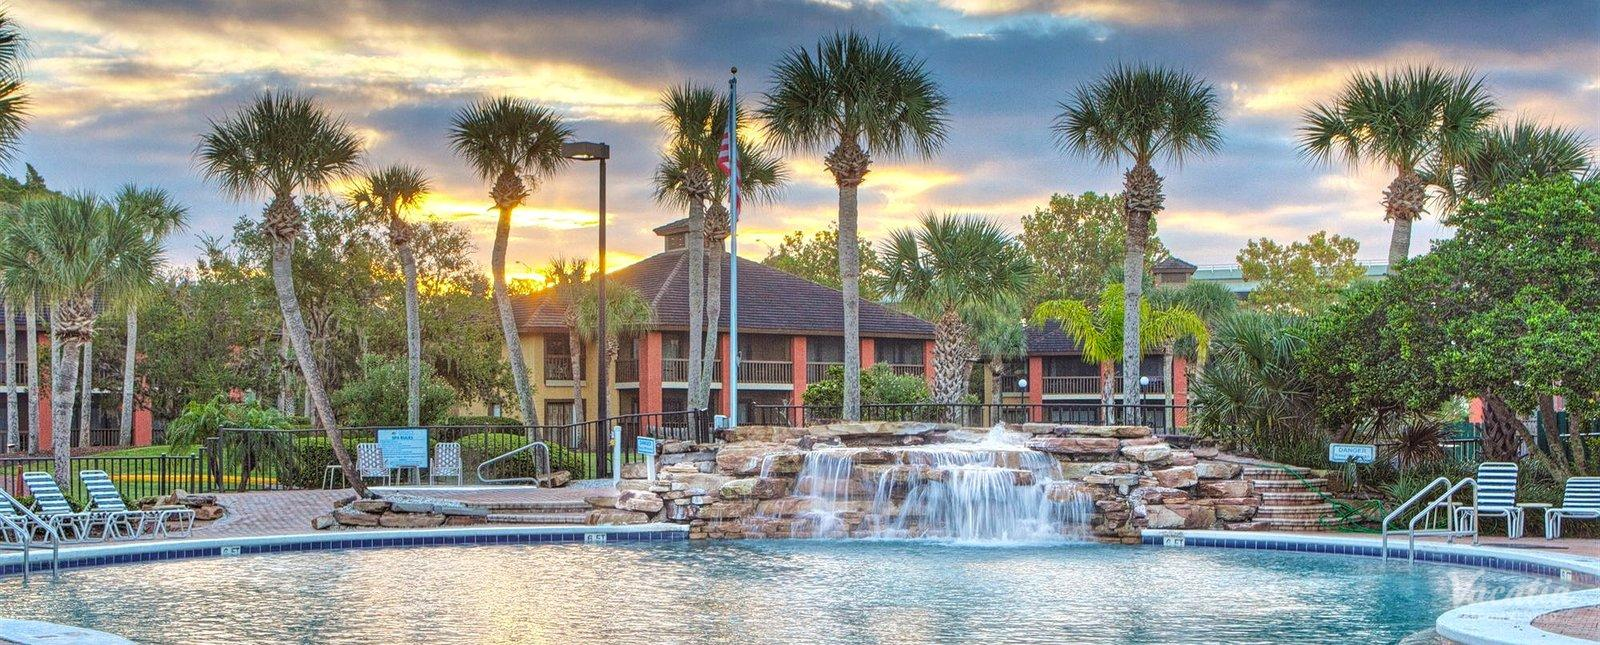 Legacy Vacation Club Palm Coast >> Legacy Vacation Club Palm Coast Daytona Beach, FL | Vacatia